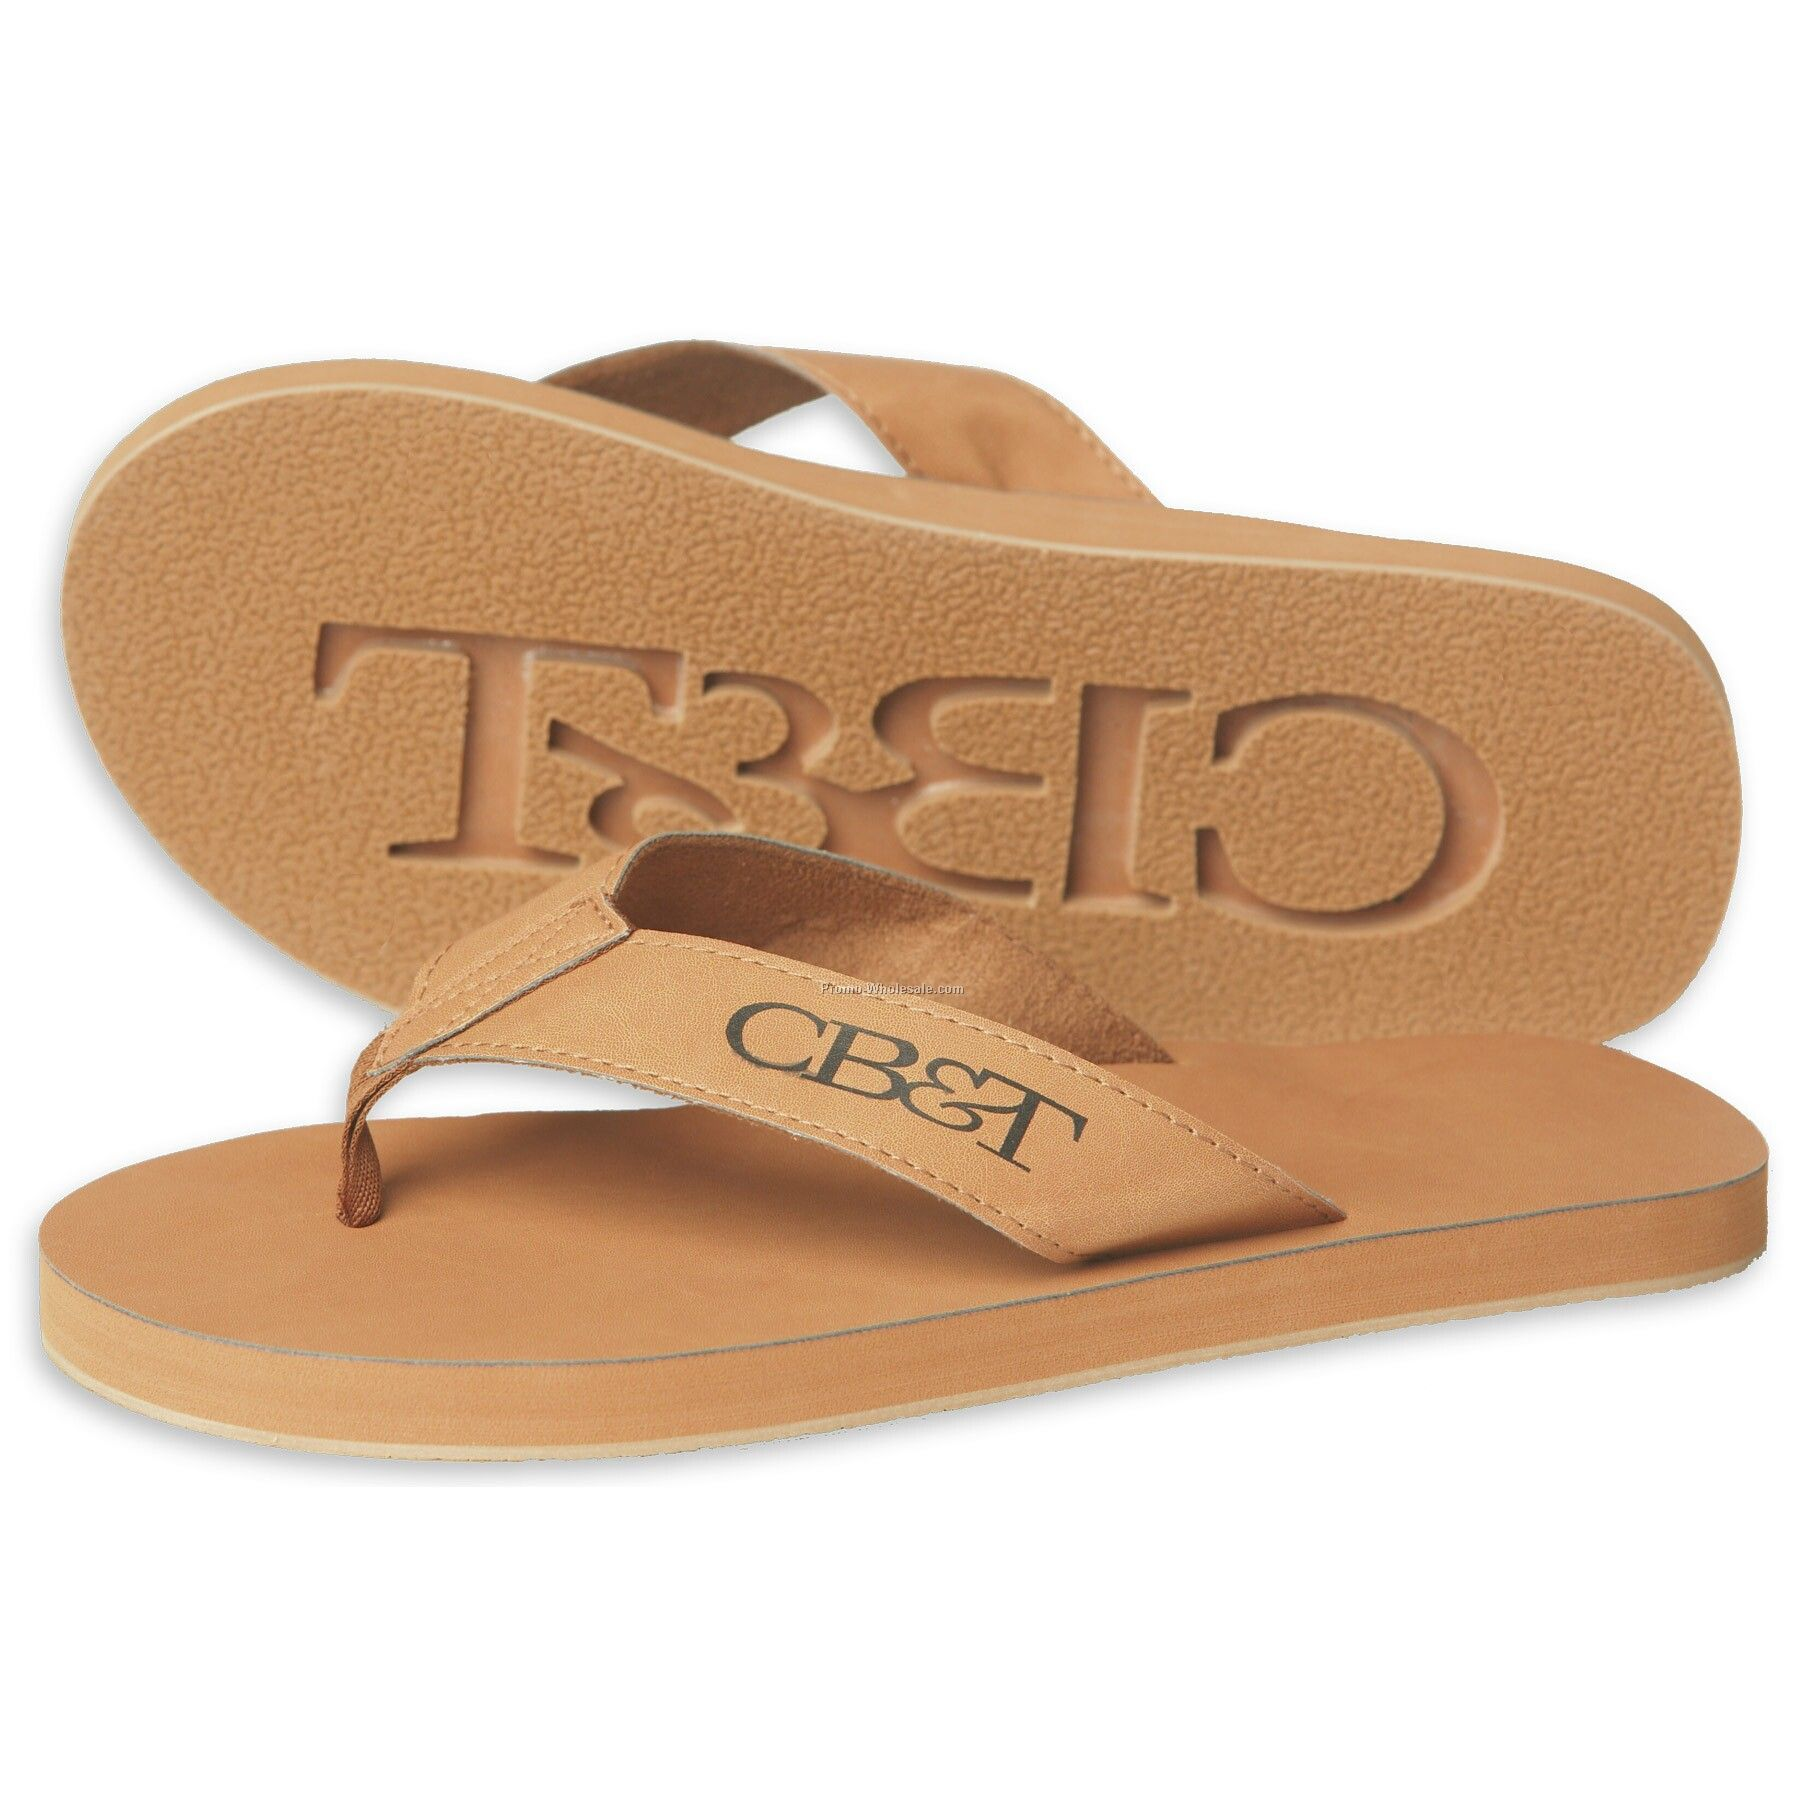 The Del Rey Sandals - Synthetic Leather With Arch Support (Domestic)